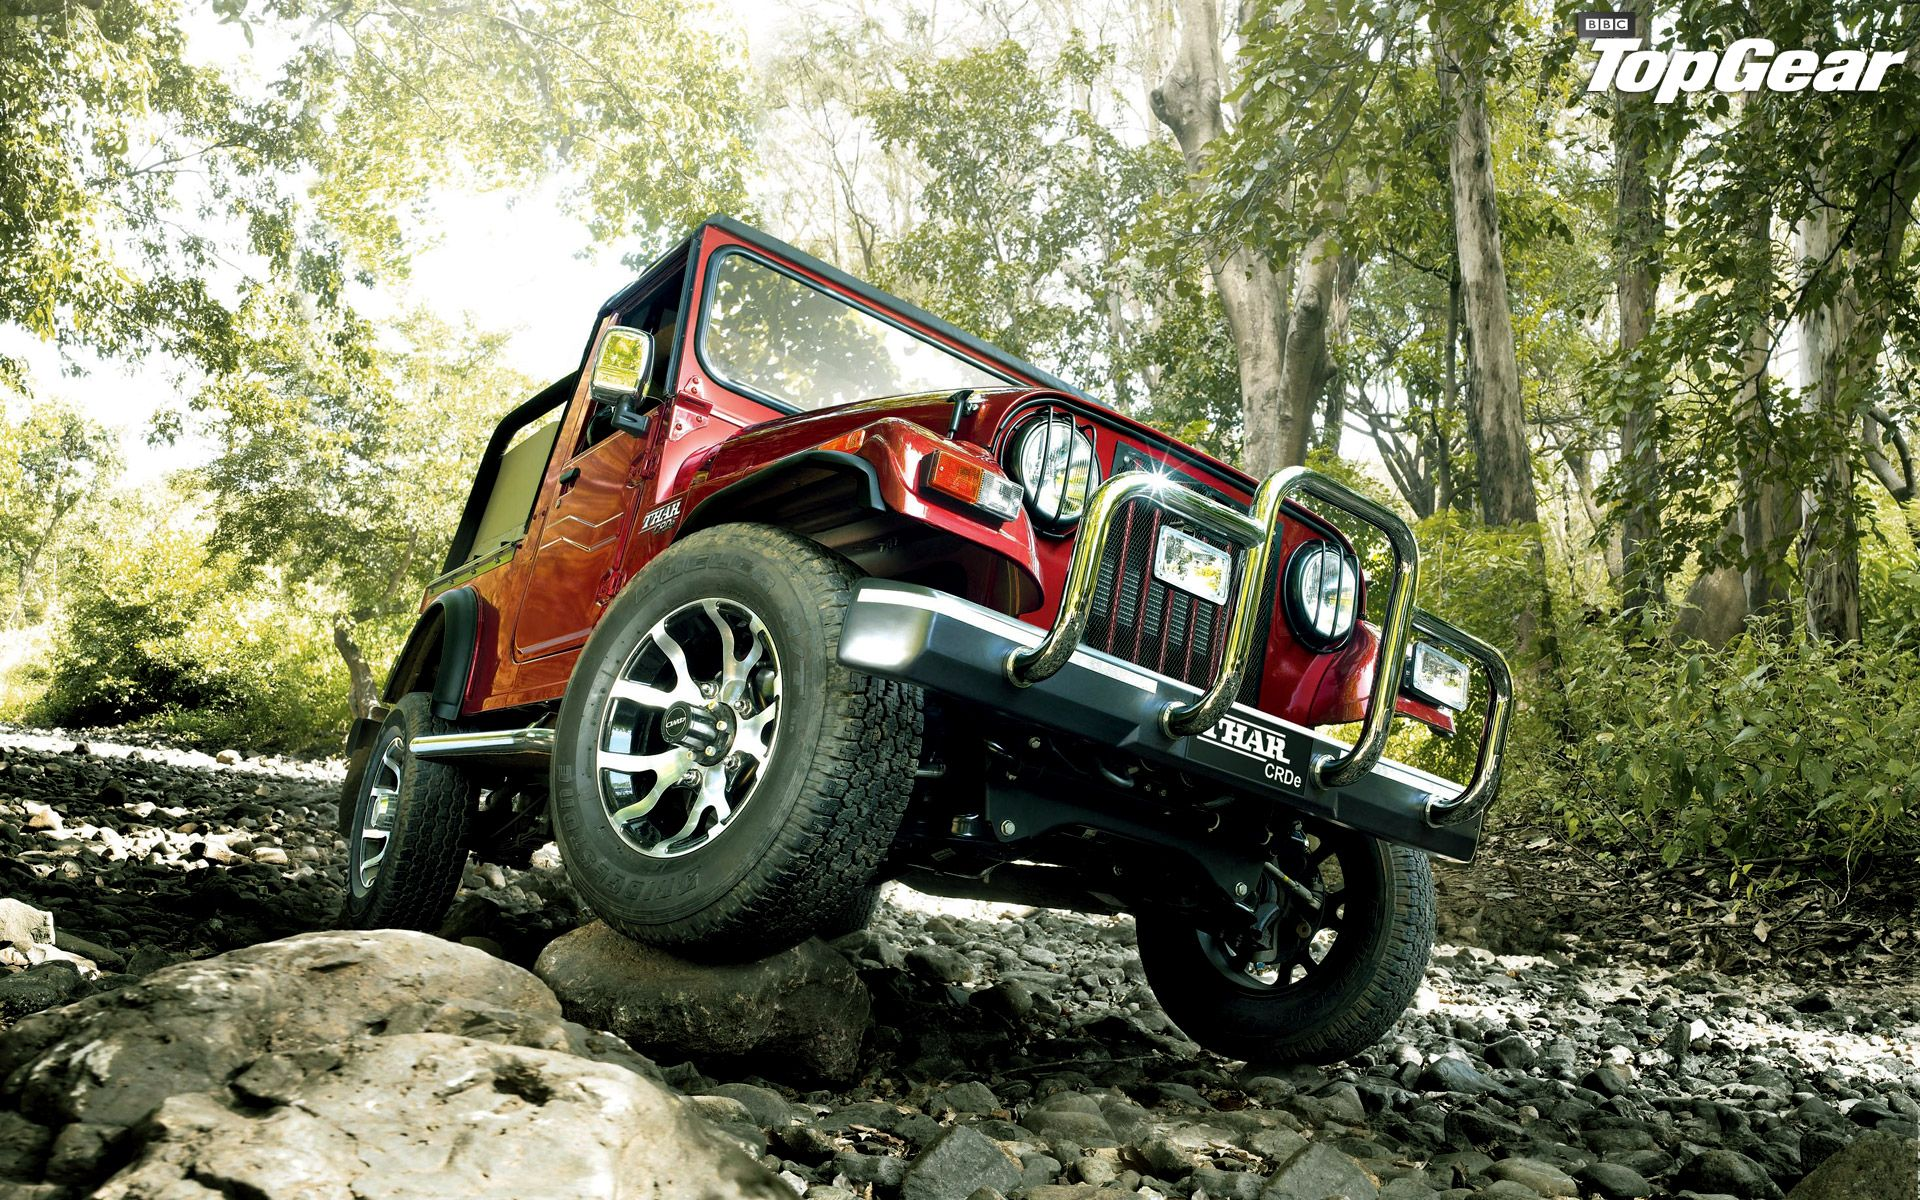 Thar Jeep Wallpapers Wallpaper Cave